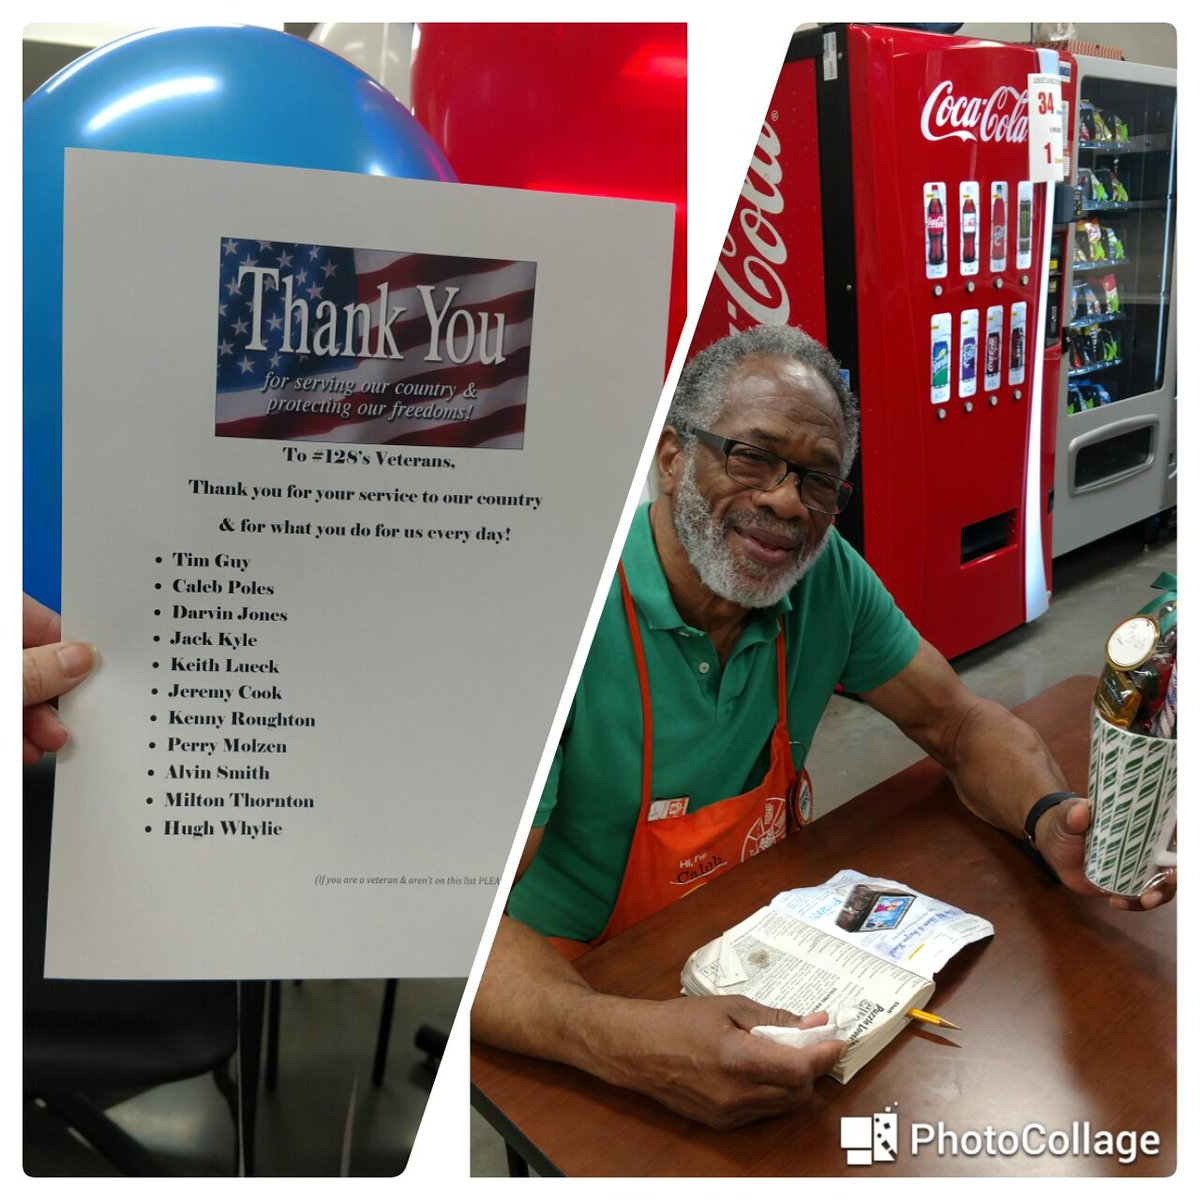 We love our#128 Veterans. Thank you for your dedication & sacrifice. @Conyers0128 @JPatton89 @jhiltonthd